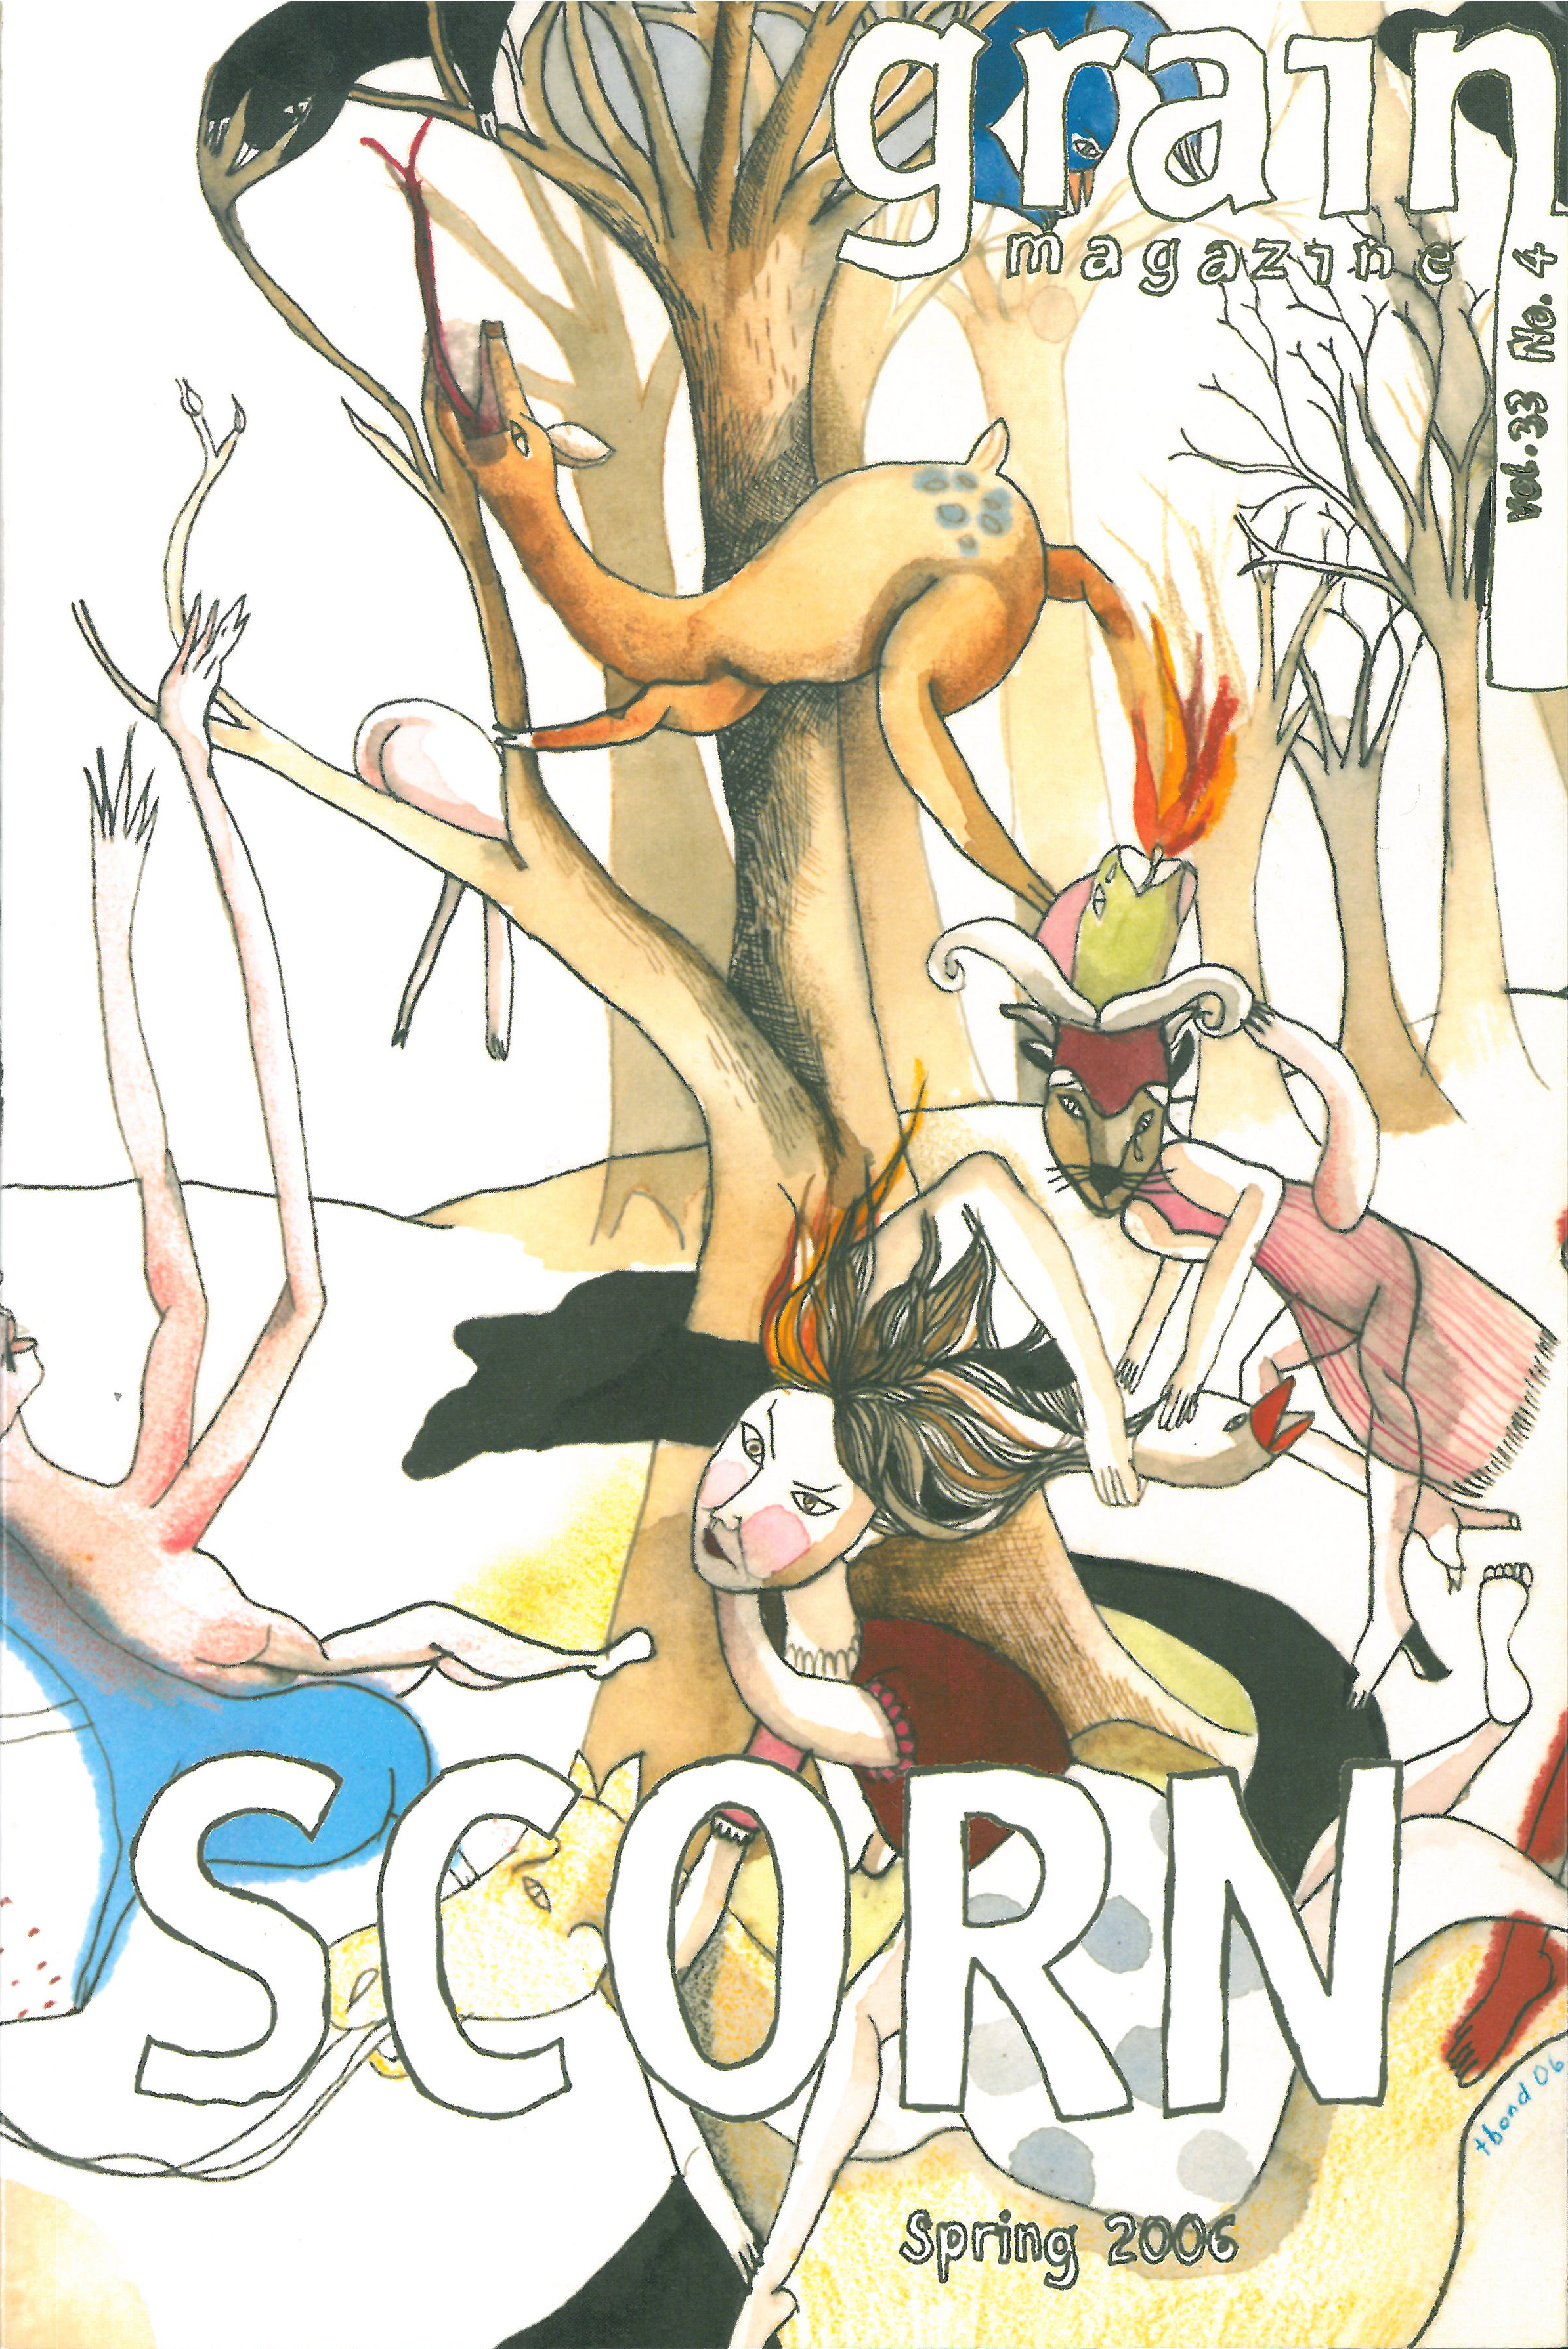 33.4 Spring 2006, Scorn  SOLD OUT